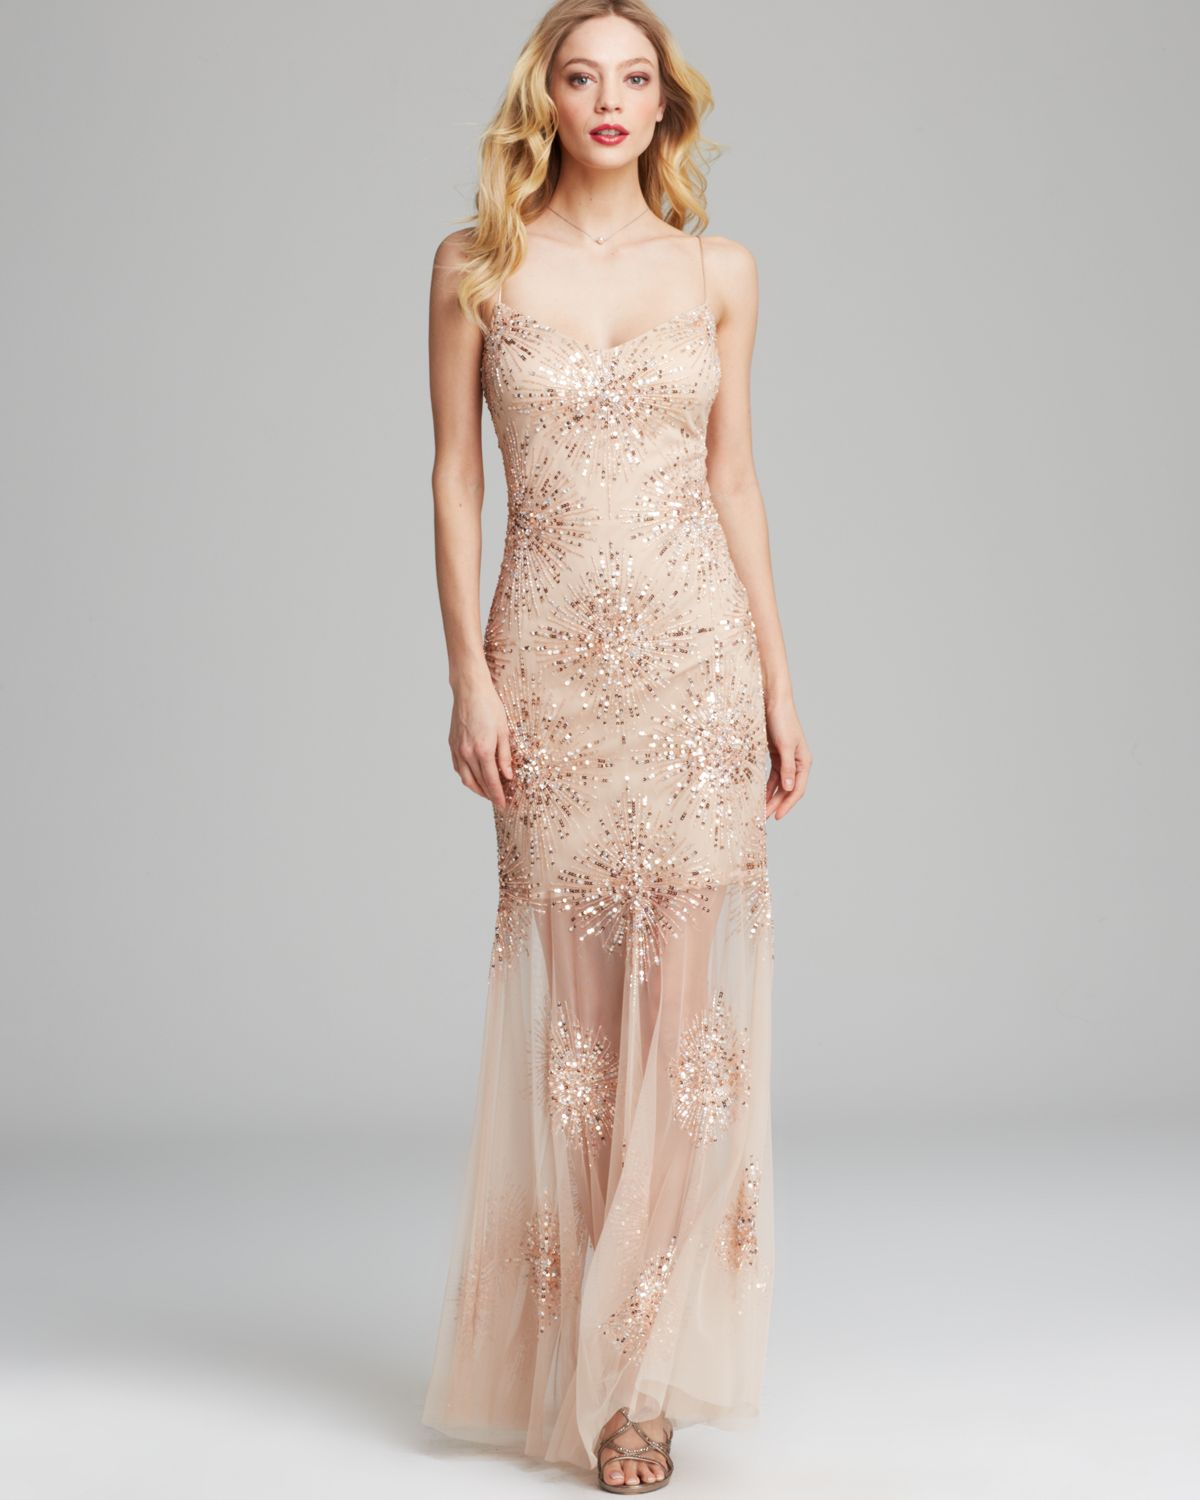 Aidan mattox Gown - Sleeveless Starburst Beaded With Sheer Hem in ...